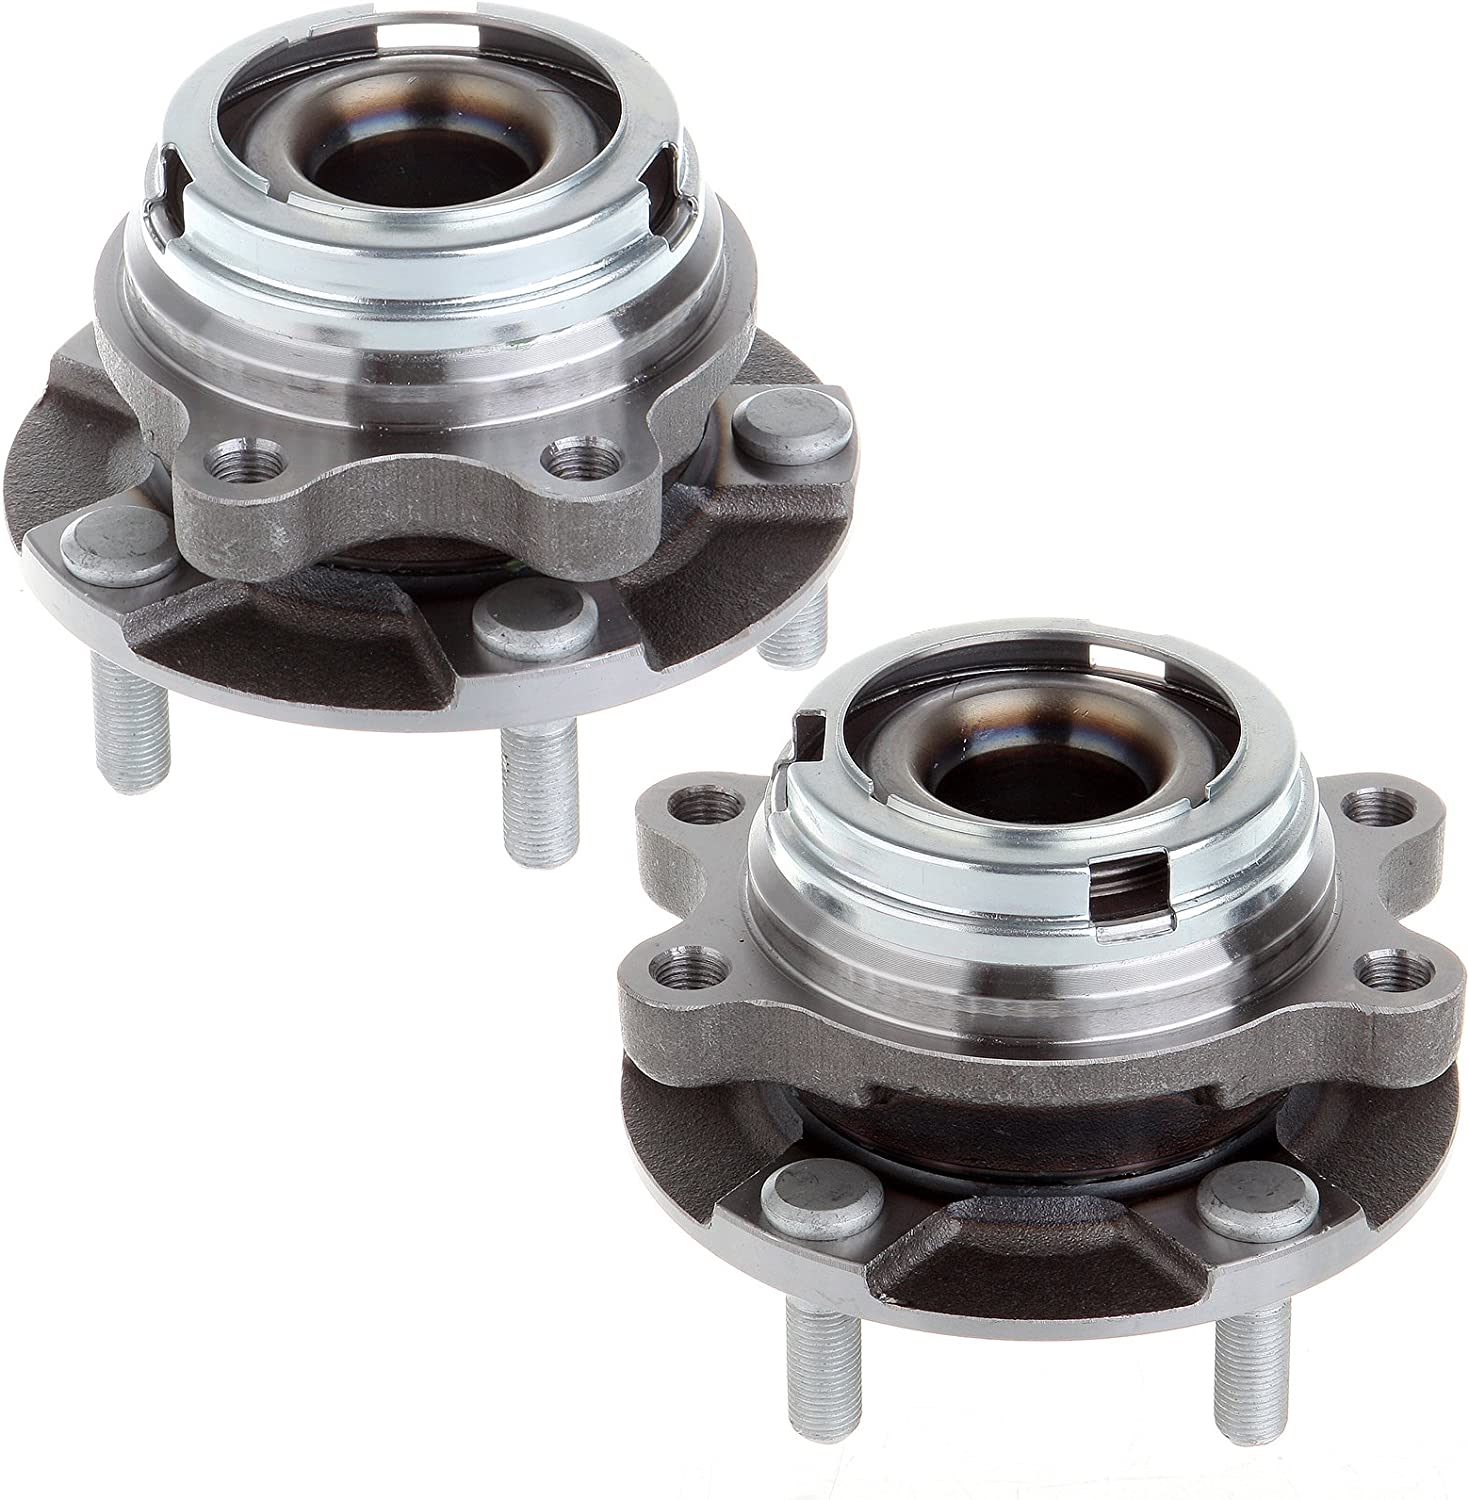 ECCPP 513294 New Brand Front Wheel Hub Bearing Assembly Replacement for Left Right Pair Set 2007 2008 2009 2010 2011 2012 2013 Nissan Altima 2.5L FWD (Driver or Passenger Side)